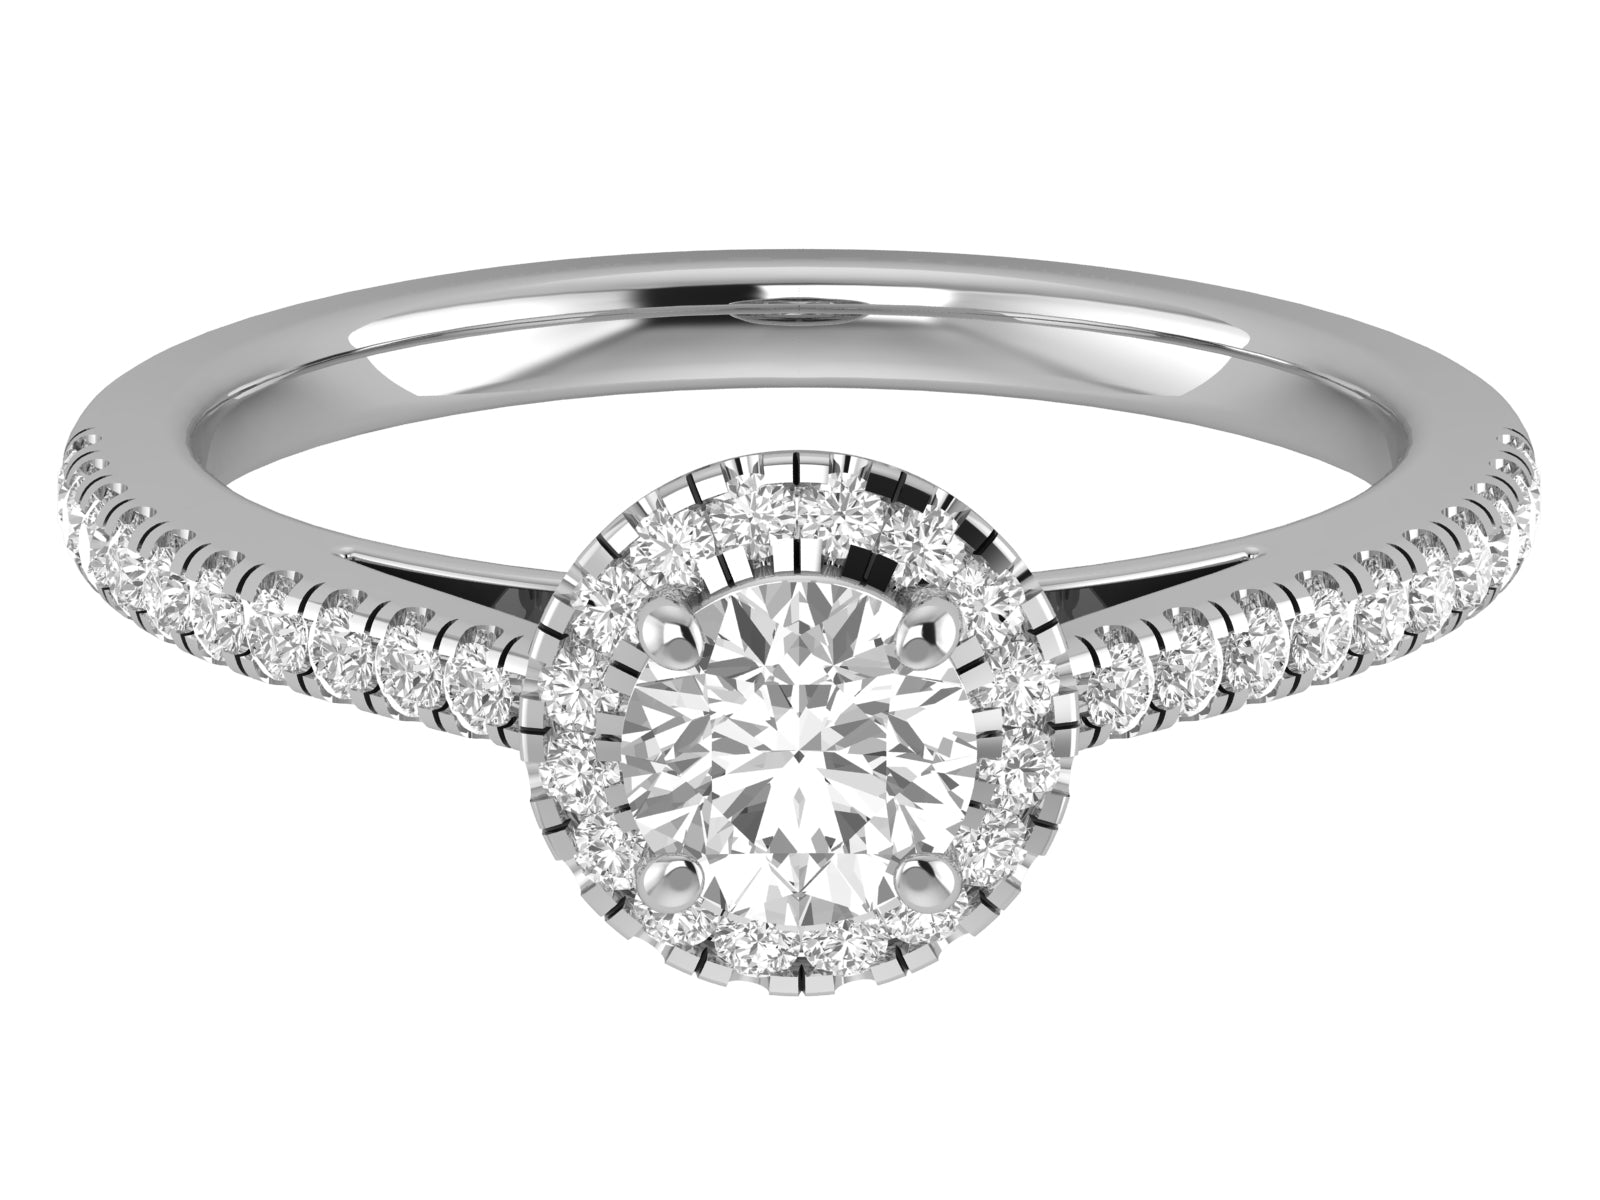 Philia - Wedding Engagement Ring - Certified